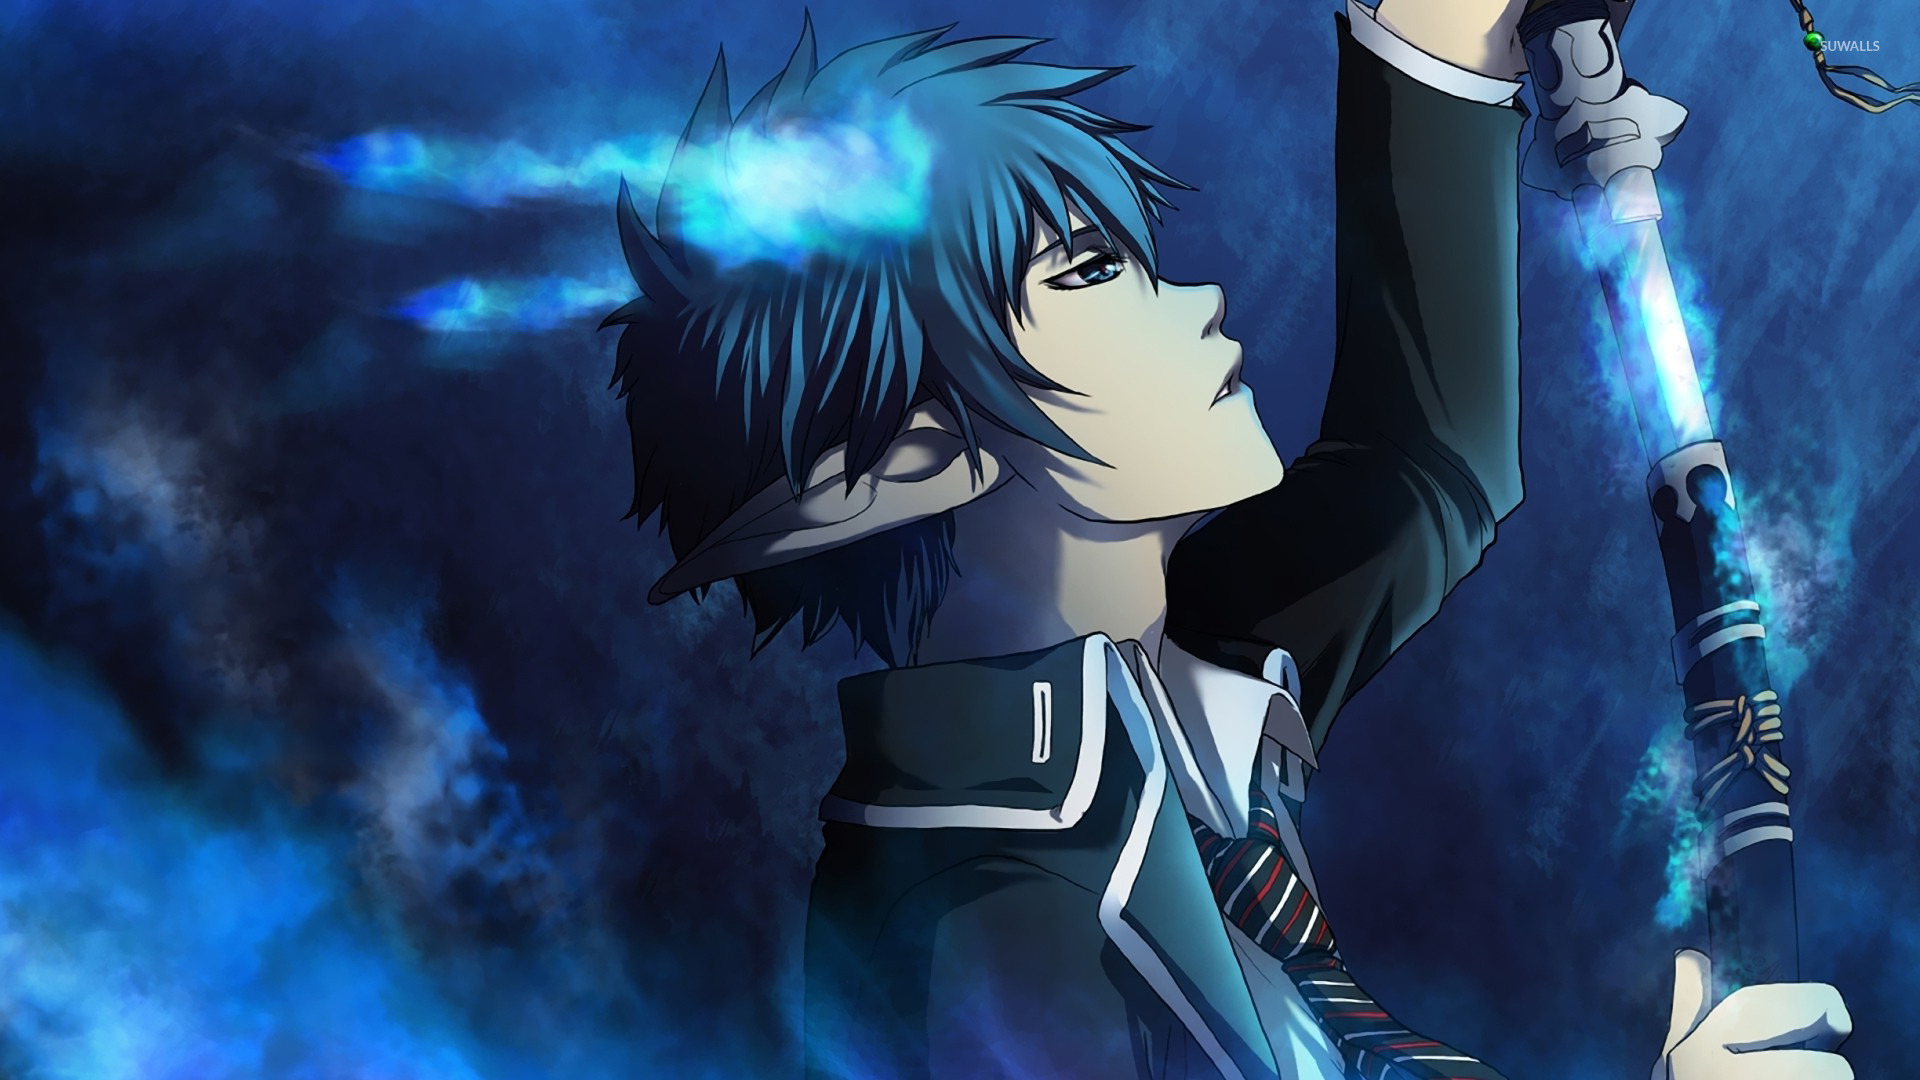 Rin Okumura Ao No Exorcist Wallpaper Anime Wallpapers 16861